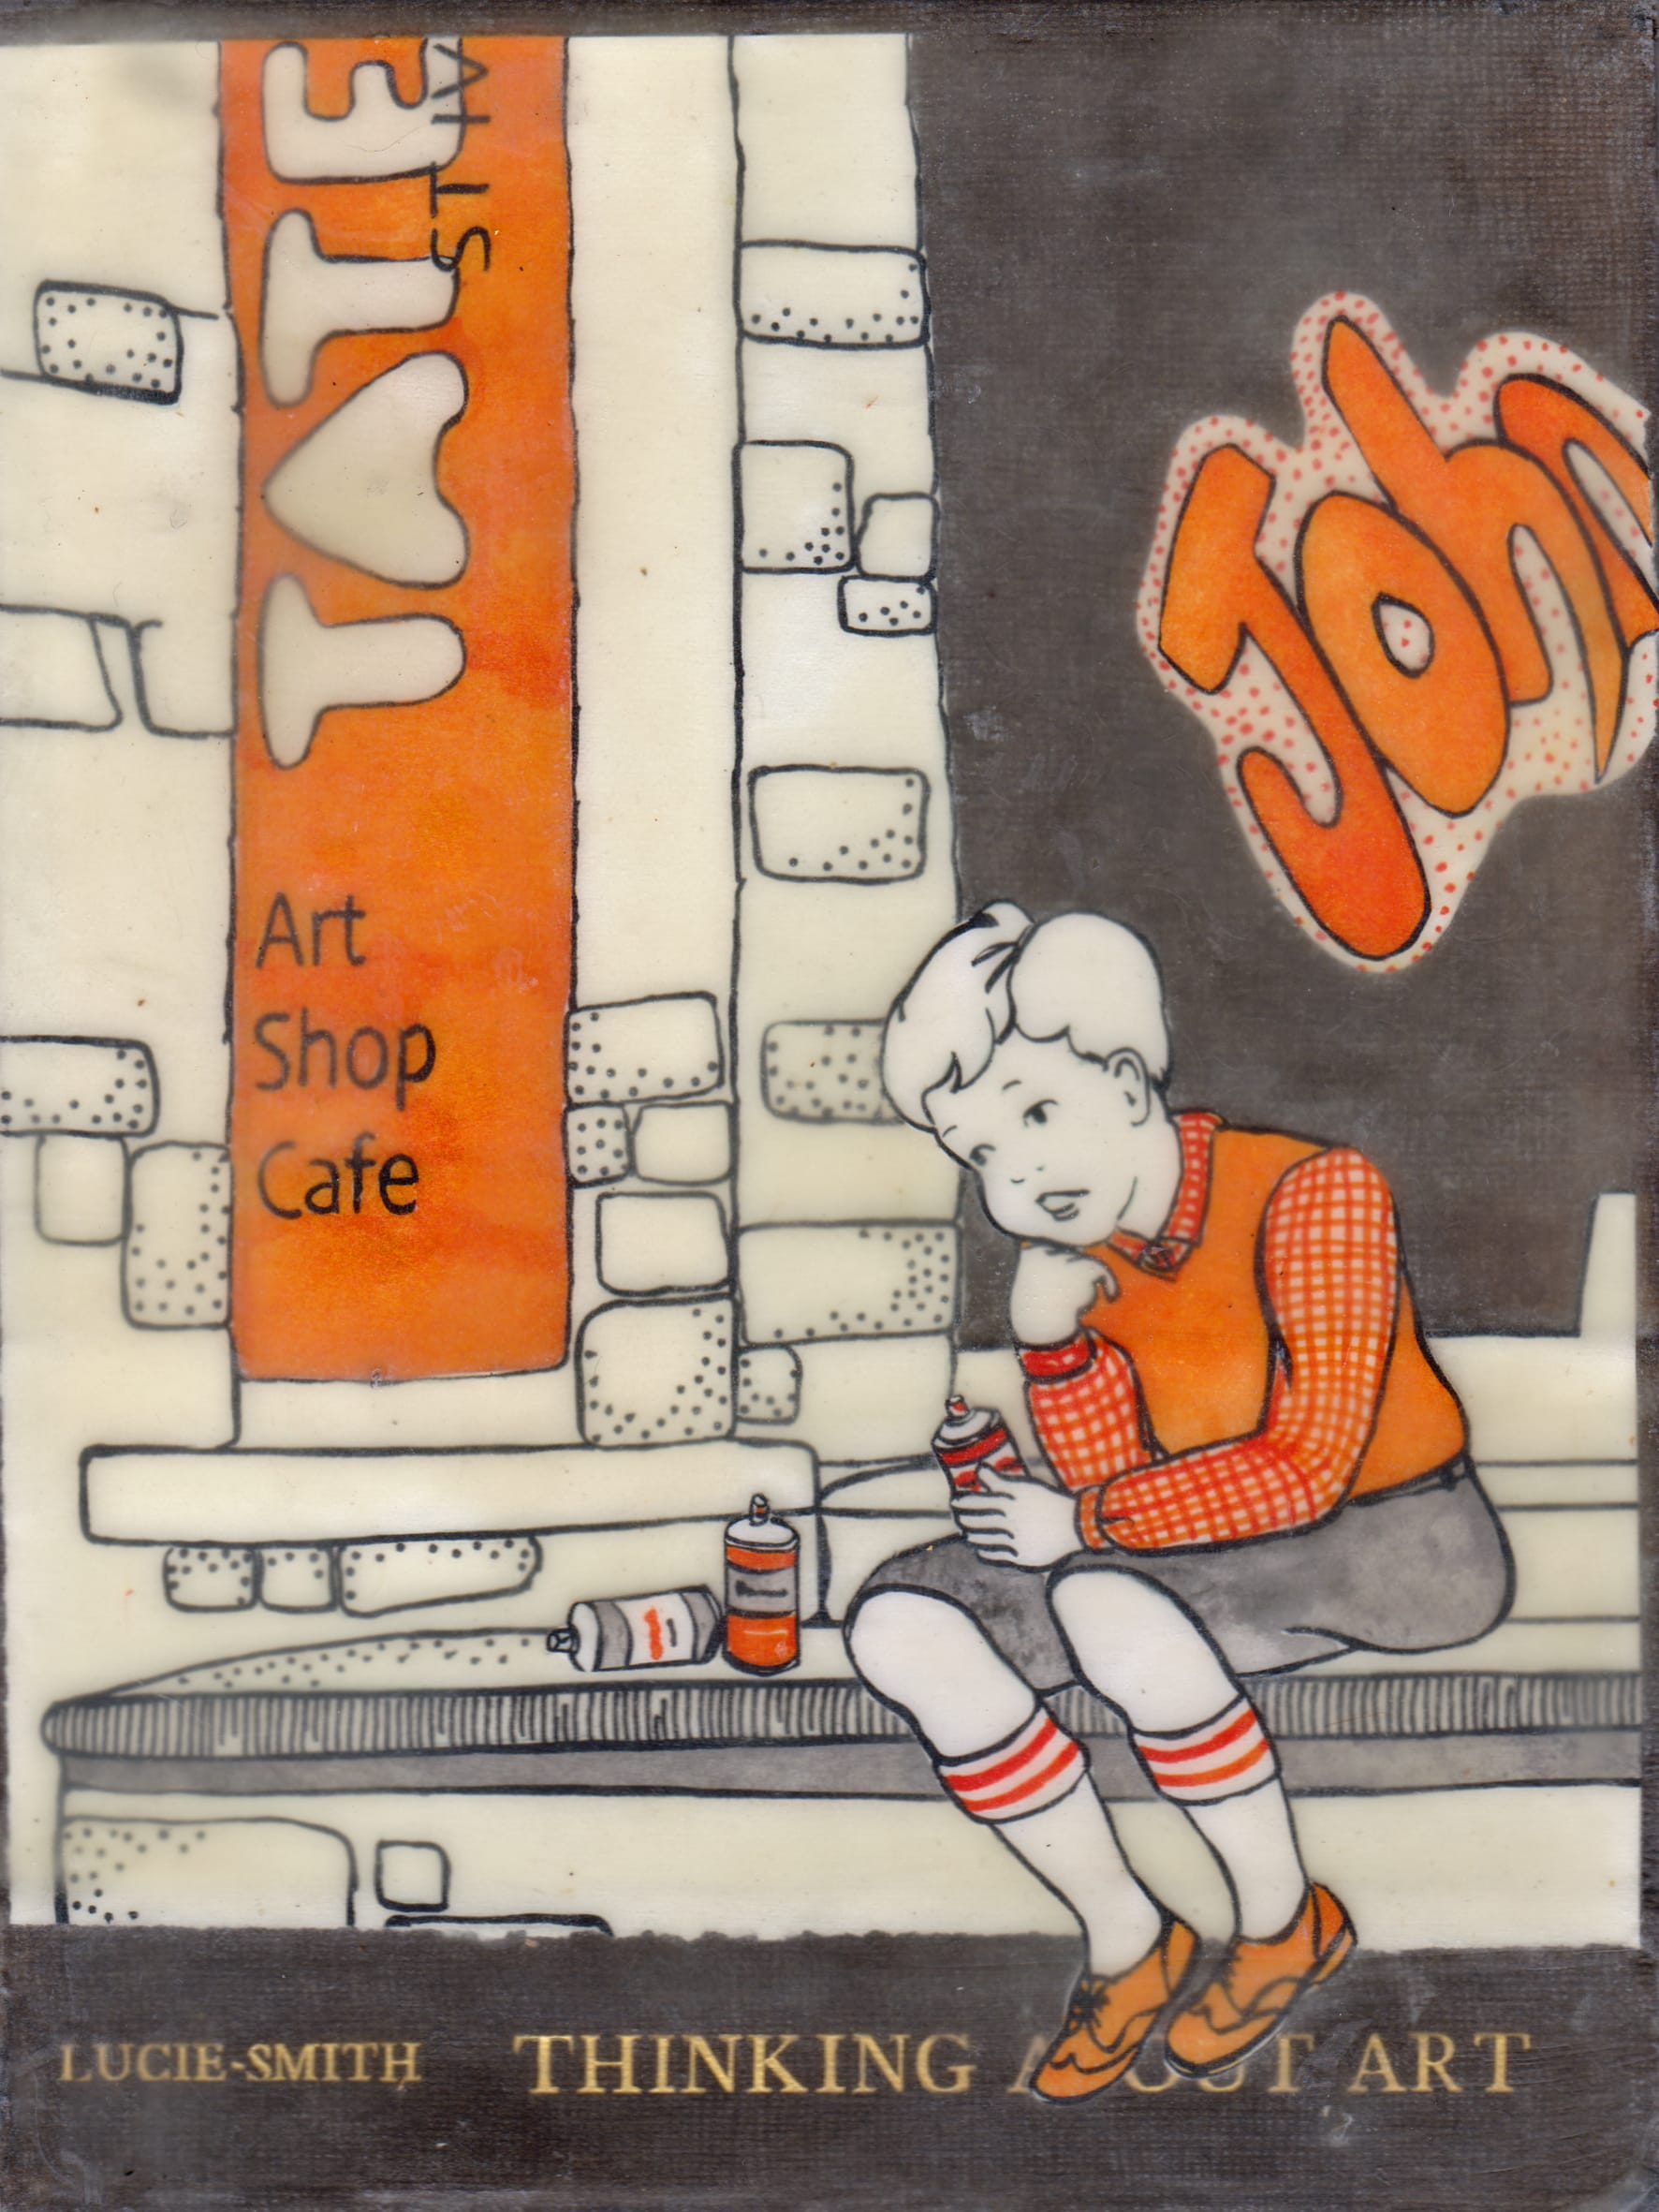 """<span class=""""link fancybox-details-link""""><a href=""""/artists/37-ann-winder-boyle/works/5884-ann-winder-boyle-thinking-about-art-2018/"""">View Detail Page</a></span><div class=""""artist""""><strong>Ann Winder-Boyle</strong></div> b. 1963 <div class=""""title""""><em>Thinking About Art</em>, 2018</div> <div class=""""signed_and_dated"""">signed by the artist on reverse</div> <div class=""""medium"""">vintage books, ink drawings and beeswax</div> <div class=""""dimensions"""">20 x 15 cm unframed<br /> 40 x 35 cm framed</div><div class=""""price"""">£695.00</div>"""